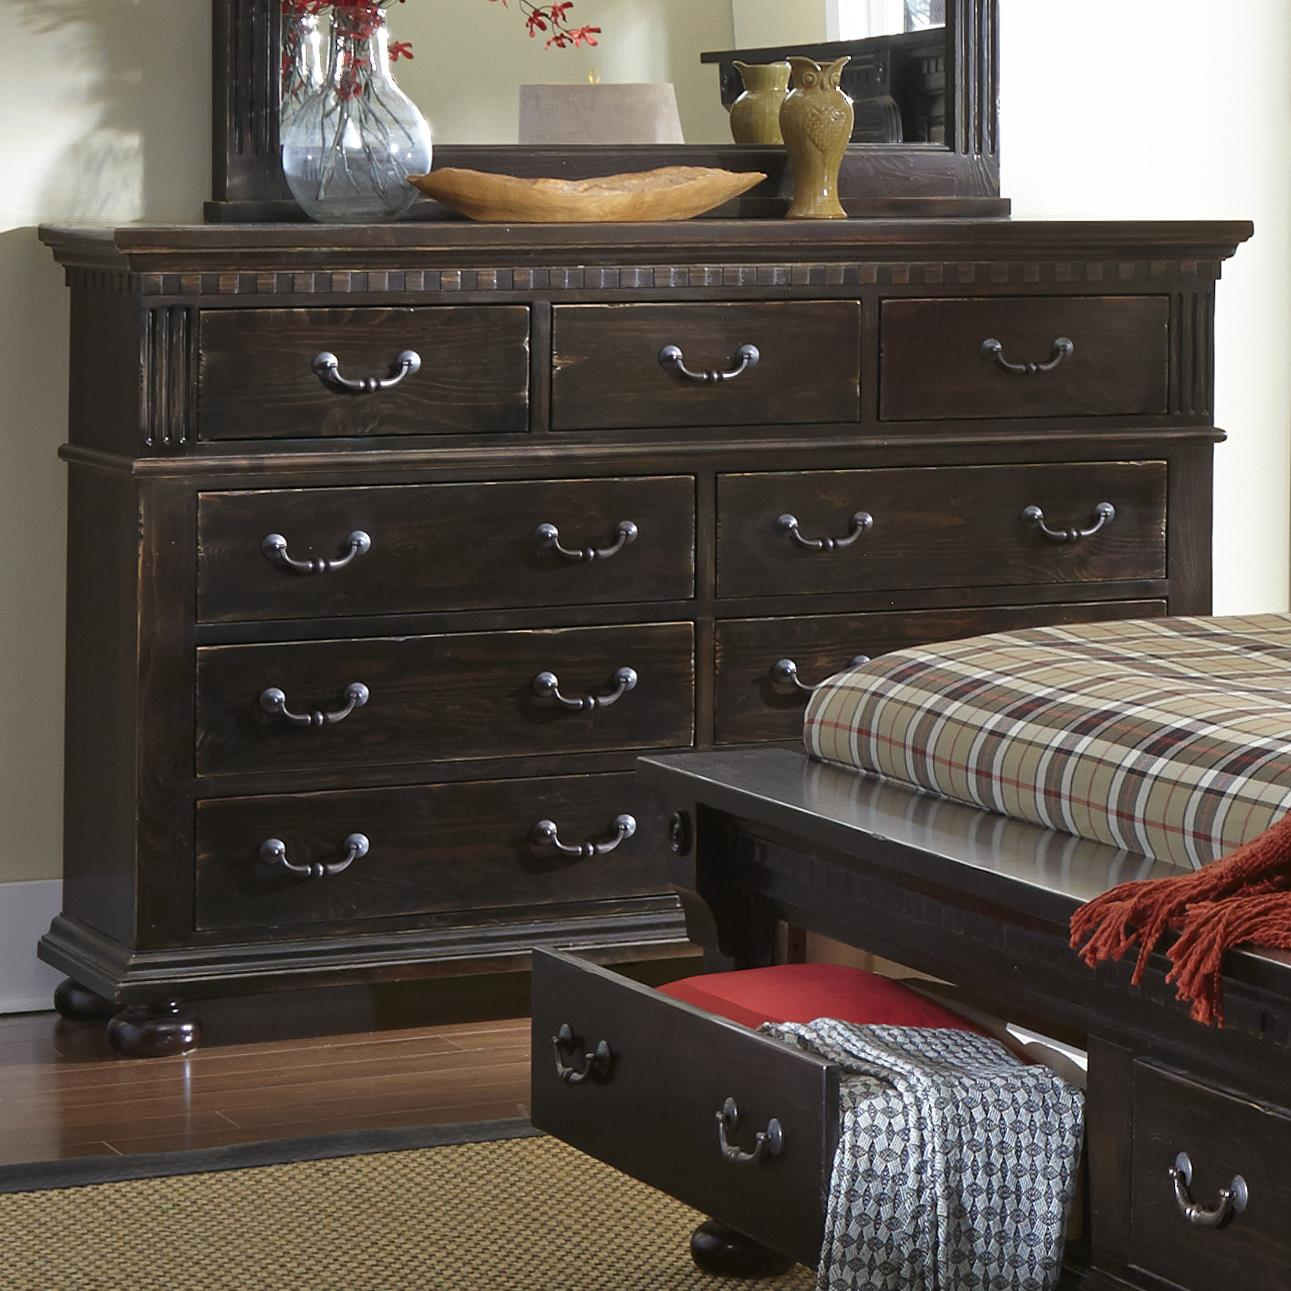 Progressive Furniture La Cantera Drawer Dresser - Item Number: P665-23